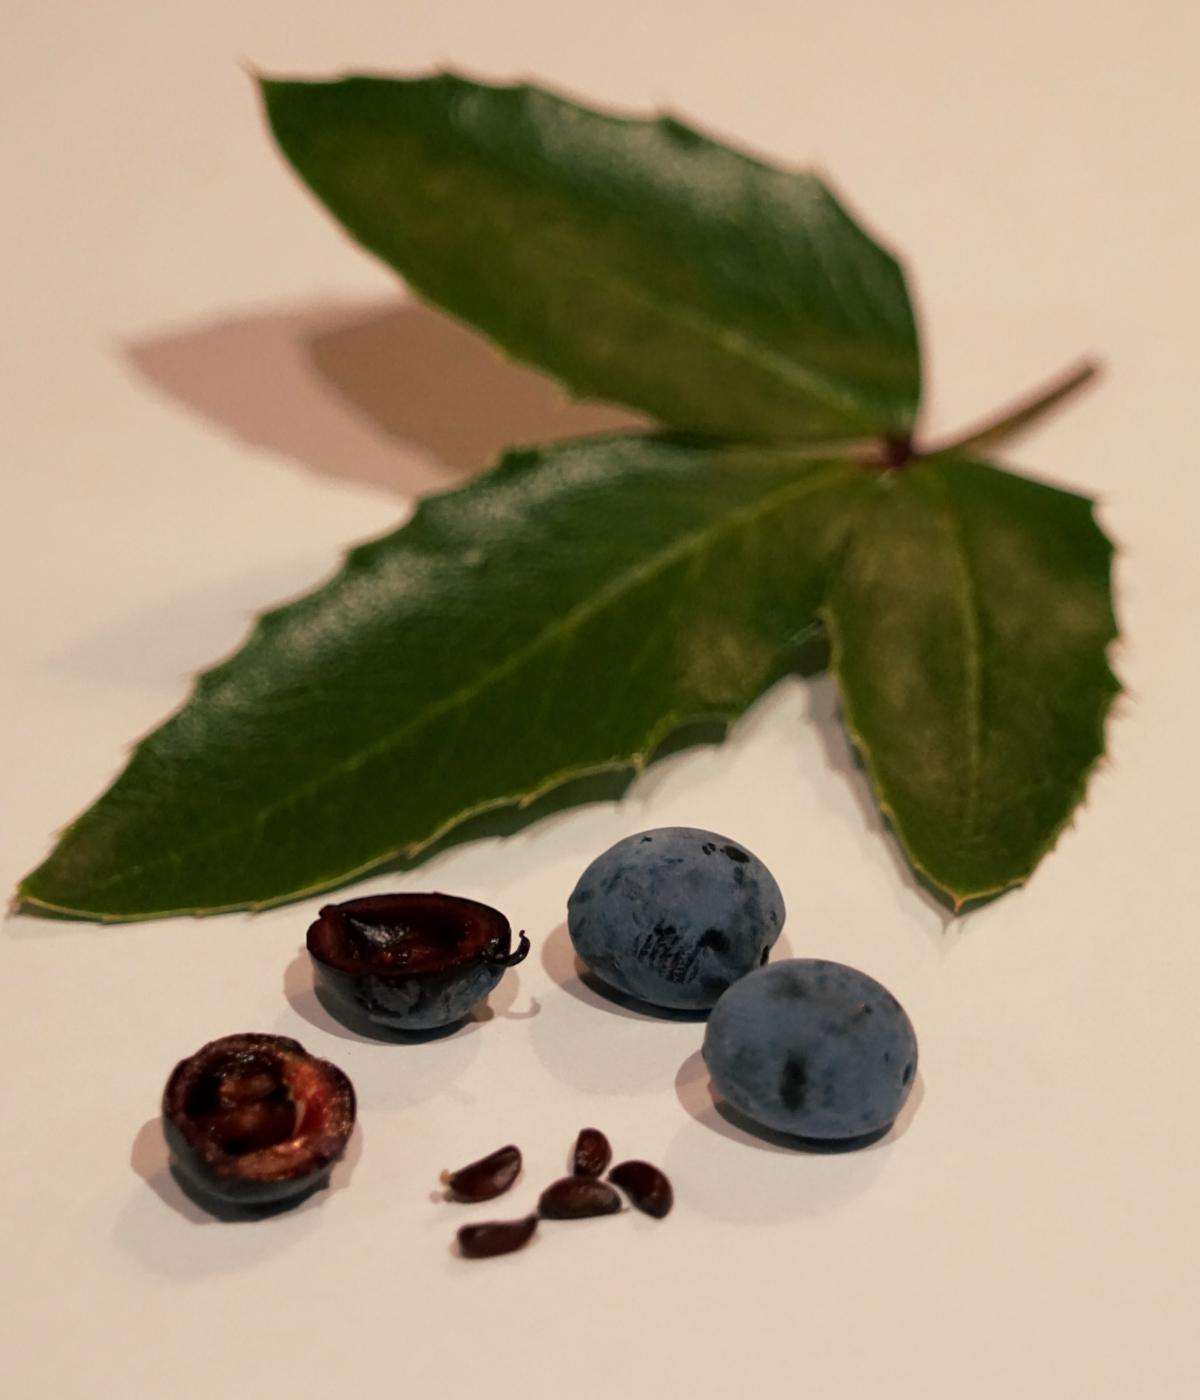 Mahonia berry – sweet & tart, best after freezing!